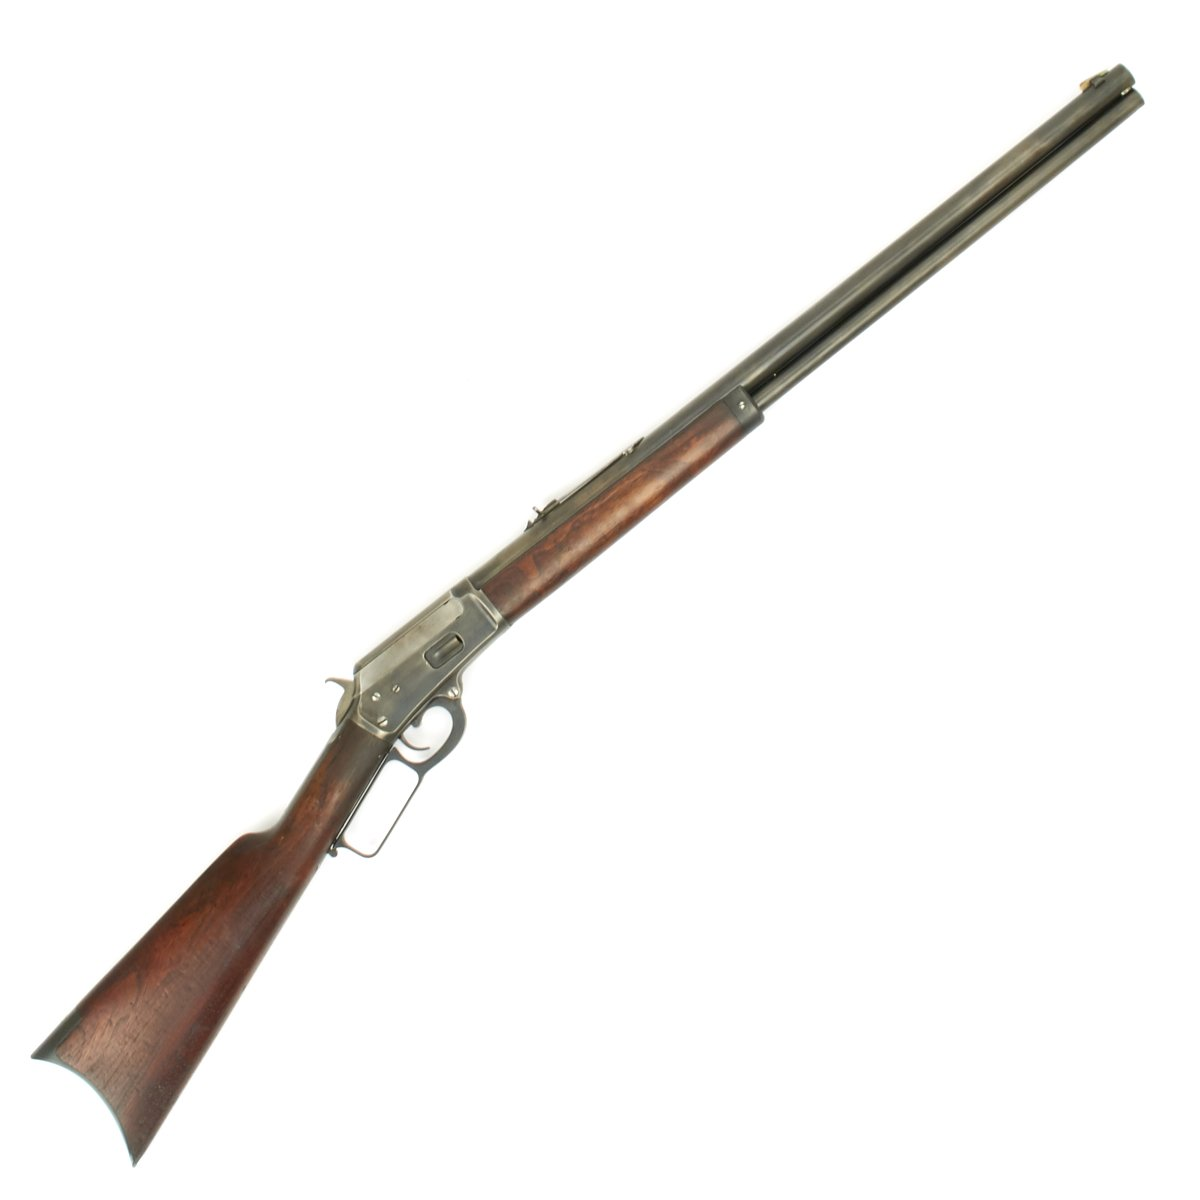 Hookup a marlin rifle by serial number